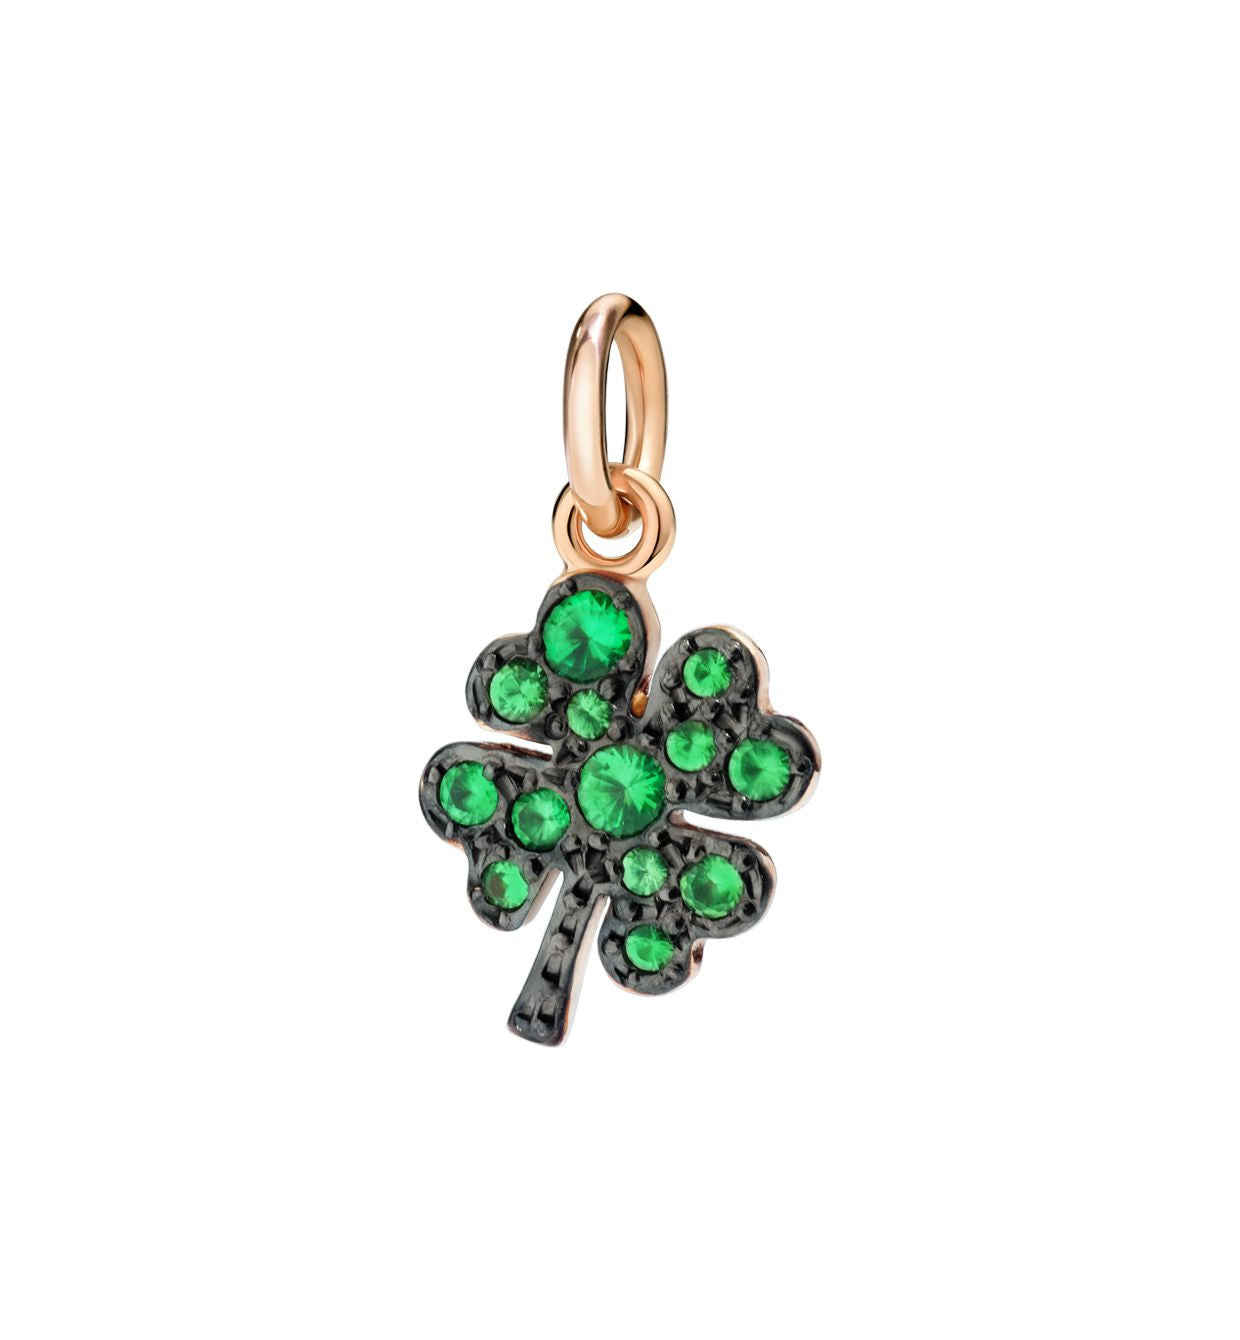 DoDo Four Leaf Clover in 9k Rose Gold with Tsavorites (Black rhodium-plated) - Orsini Jewellers NZ